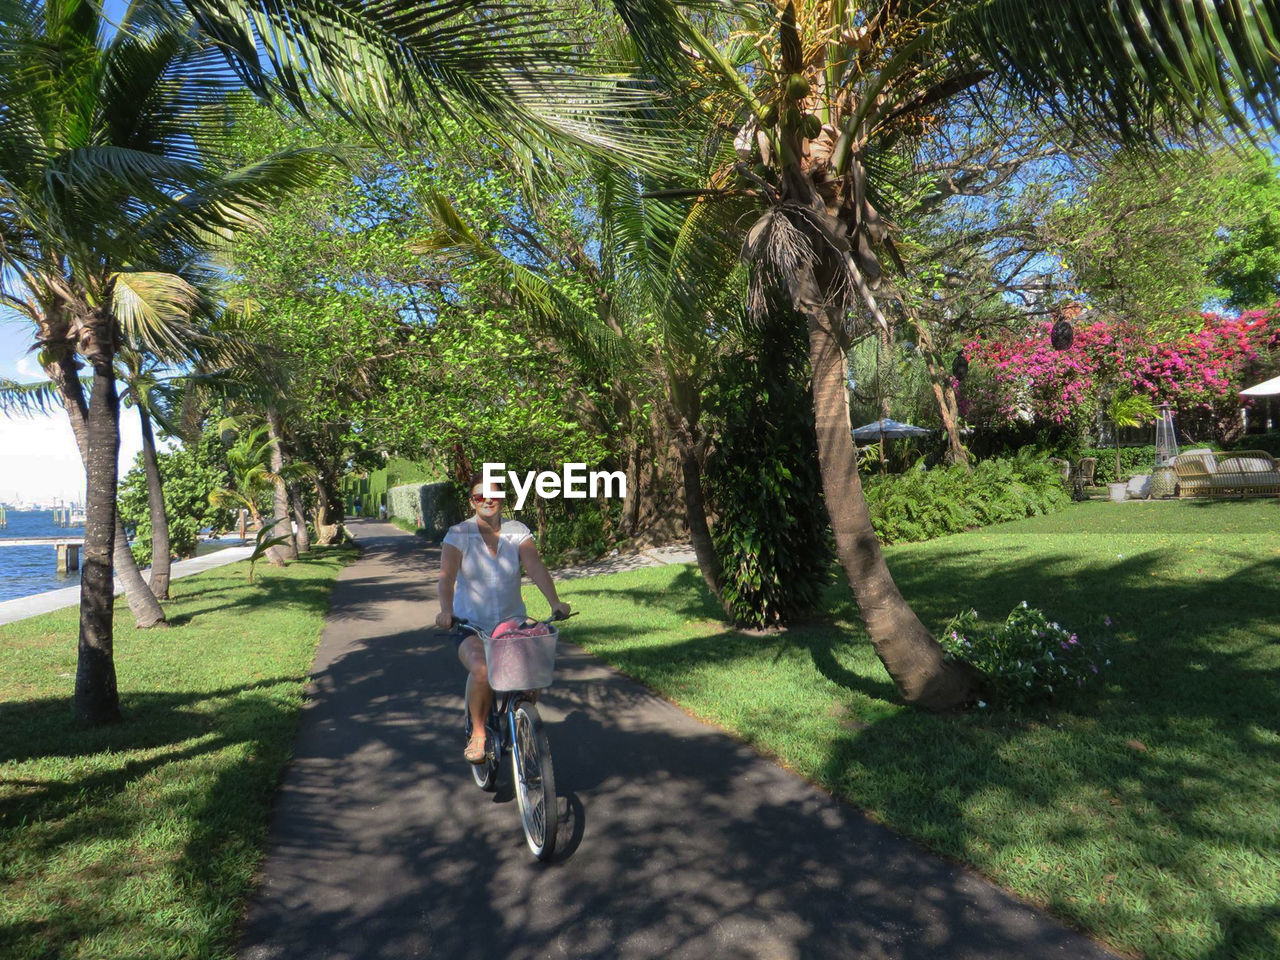 tree, palm tree, full length, bicycle, outdoors, nature, day, tree trunk, one person, vacations, real people, growth, lifestyles, grass, beauty in nature, people, adult